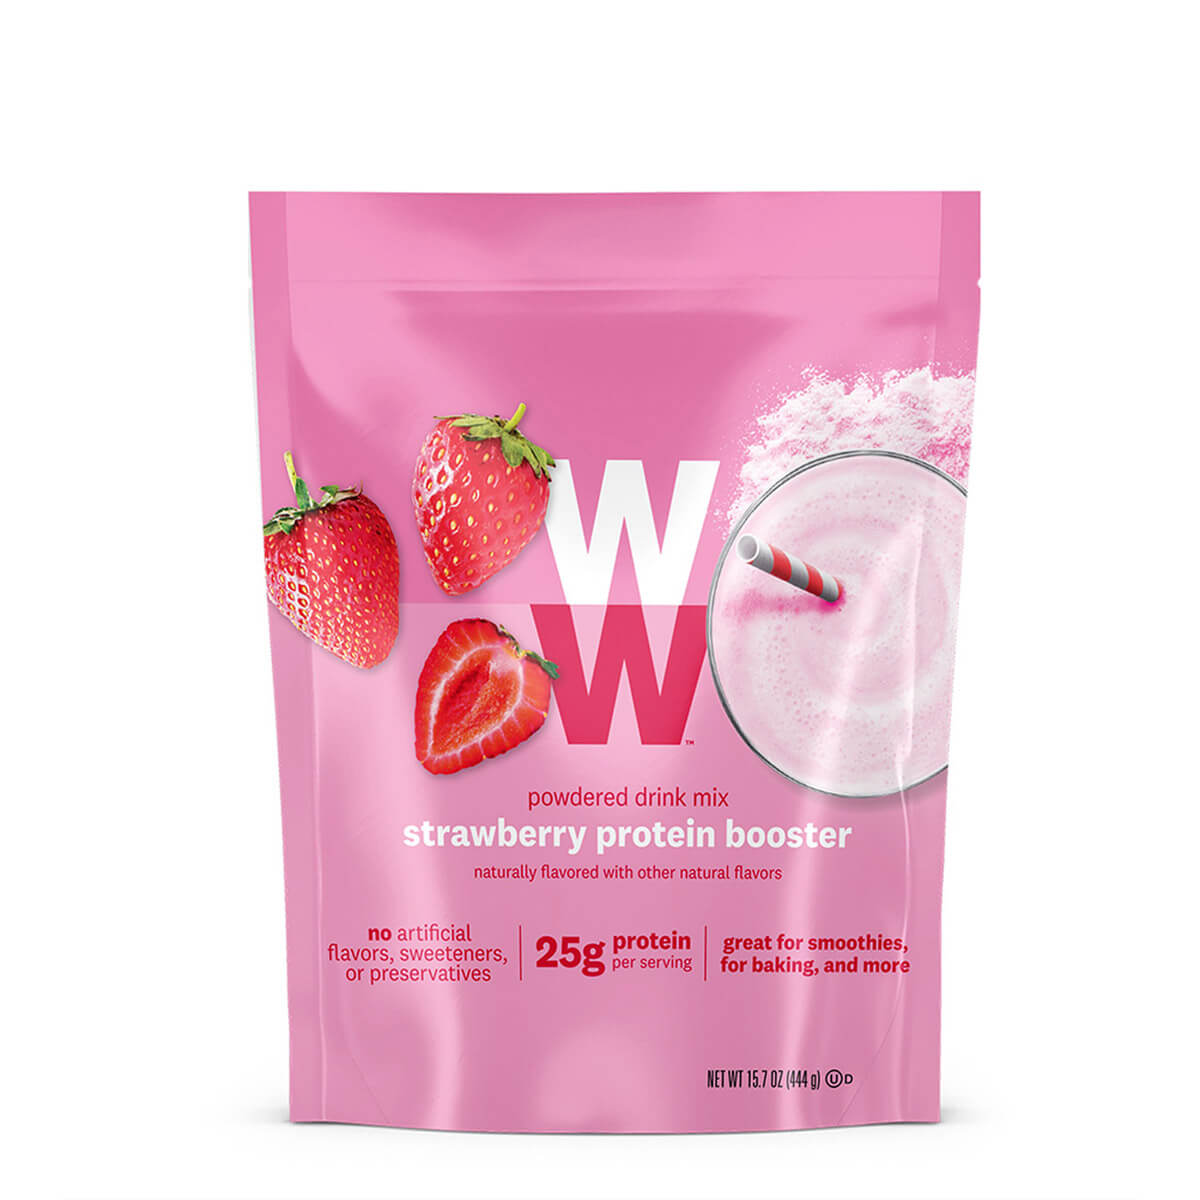 Strawberry Protein Booster, front of bag, powdered drink mix, 25g of protein, great for smoothies and baking